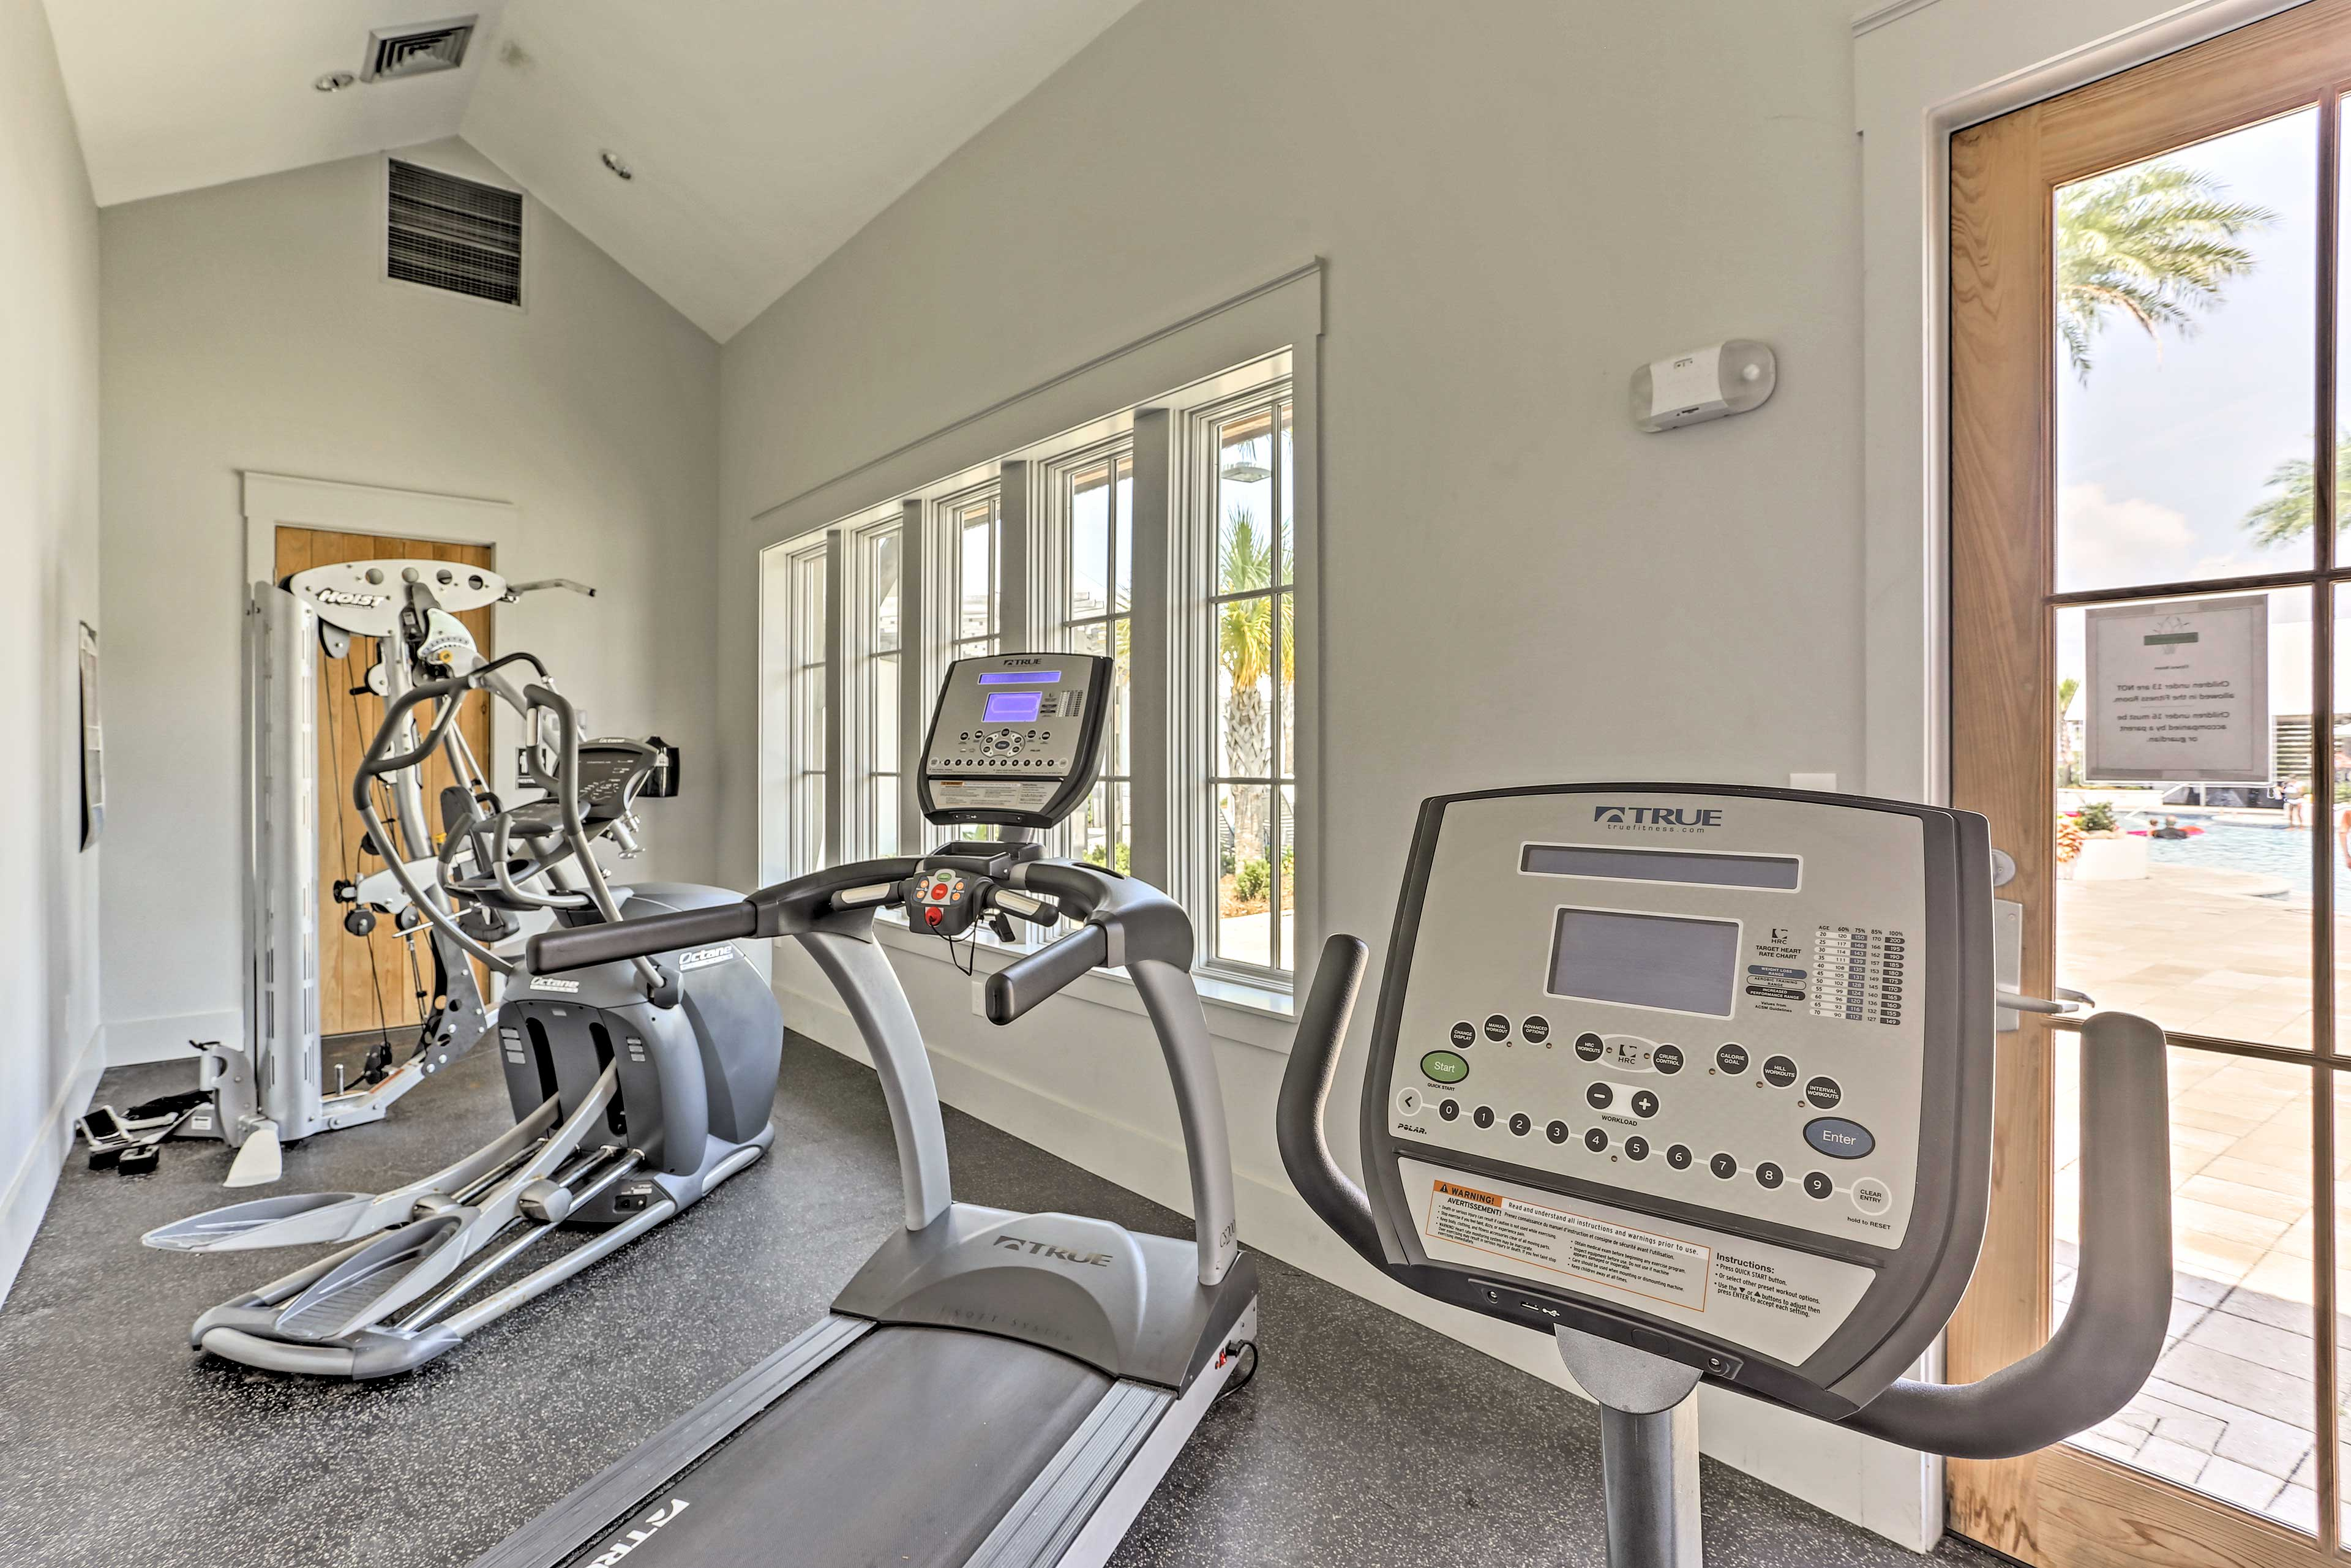 Work up a sweat in the on-site fitness center.